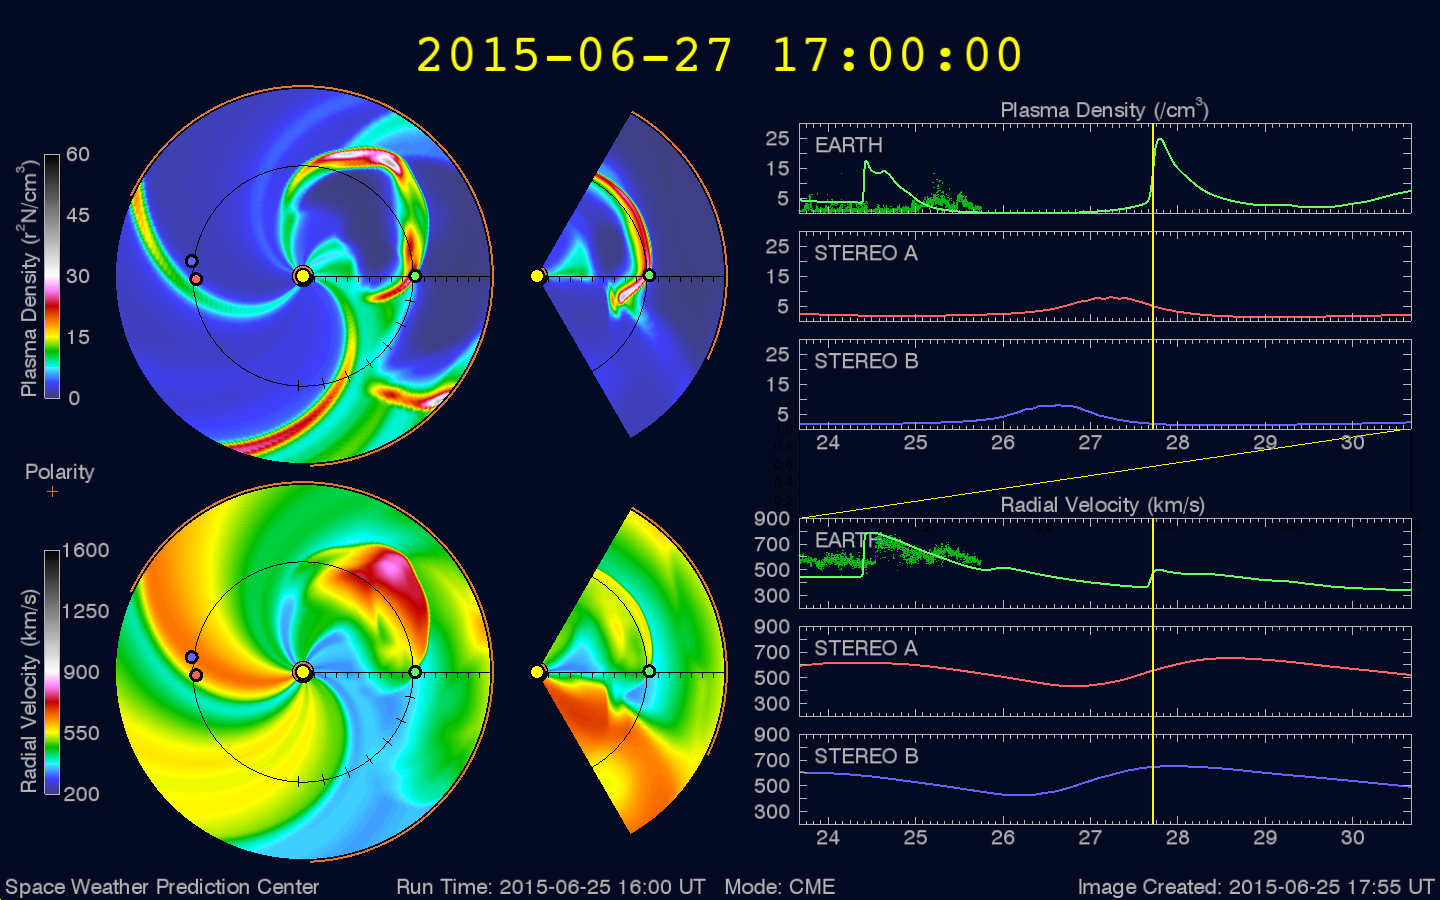 Latest CME Model run from NOAA SWPC with actual data